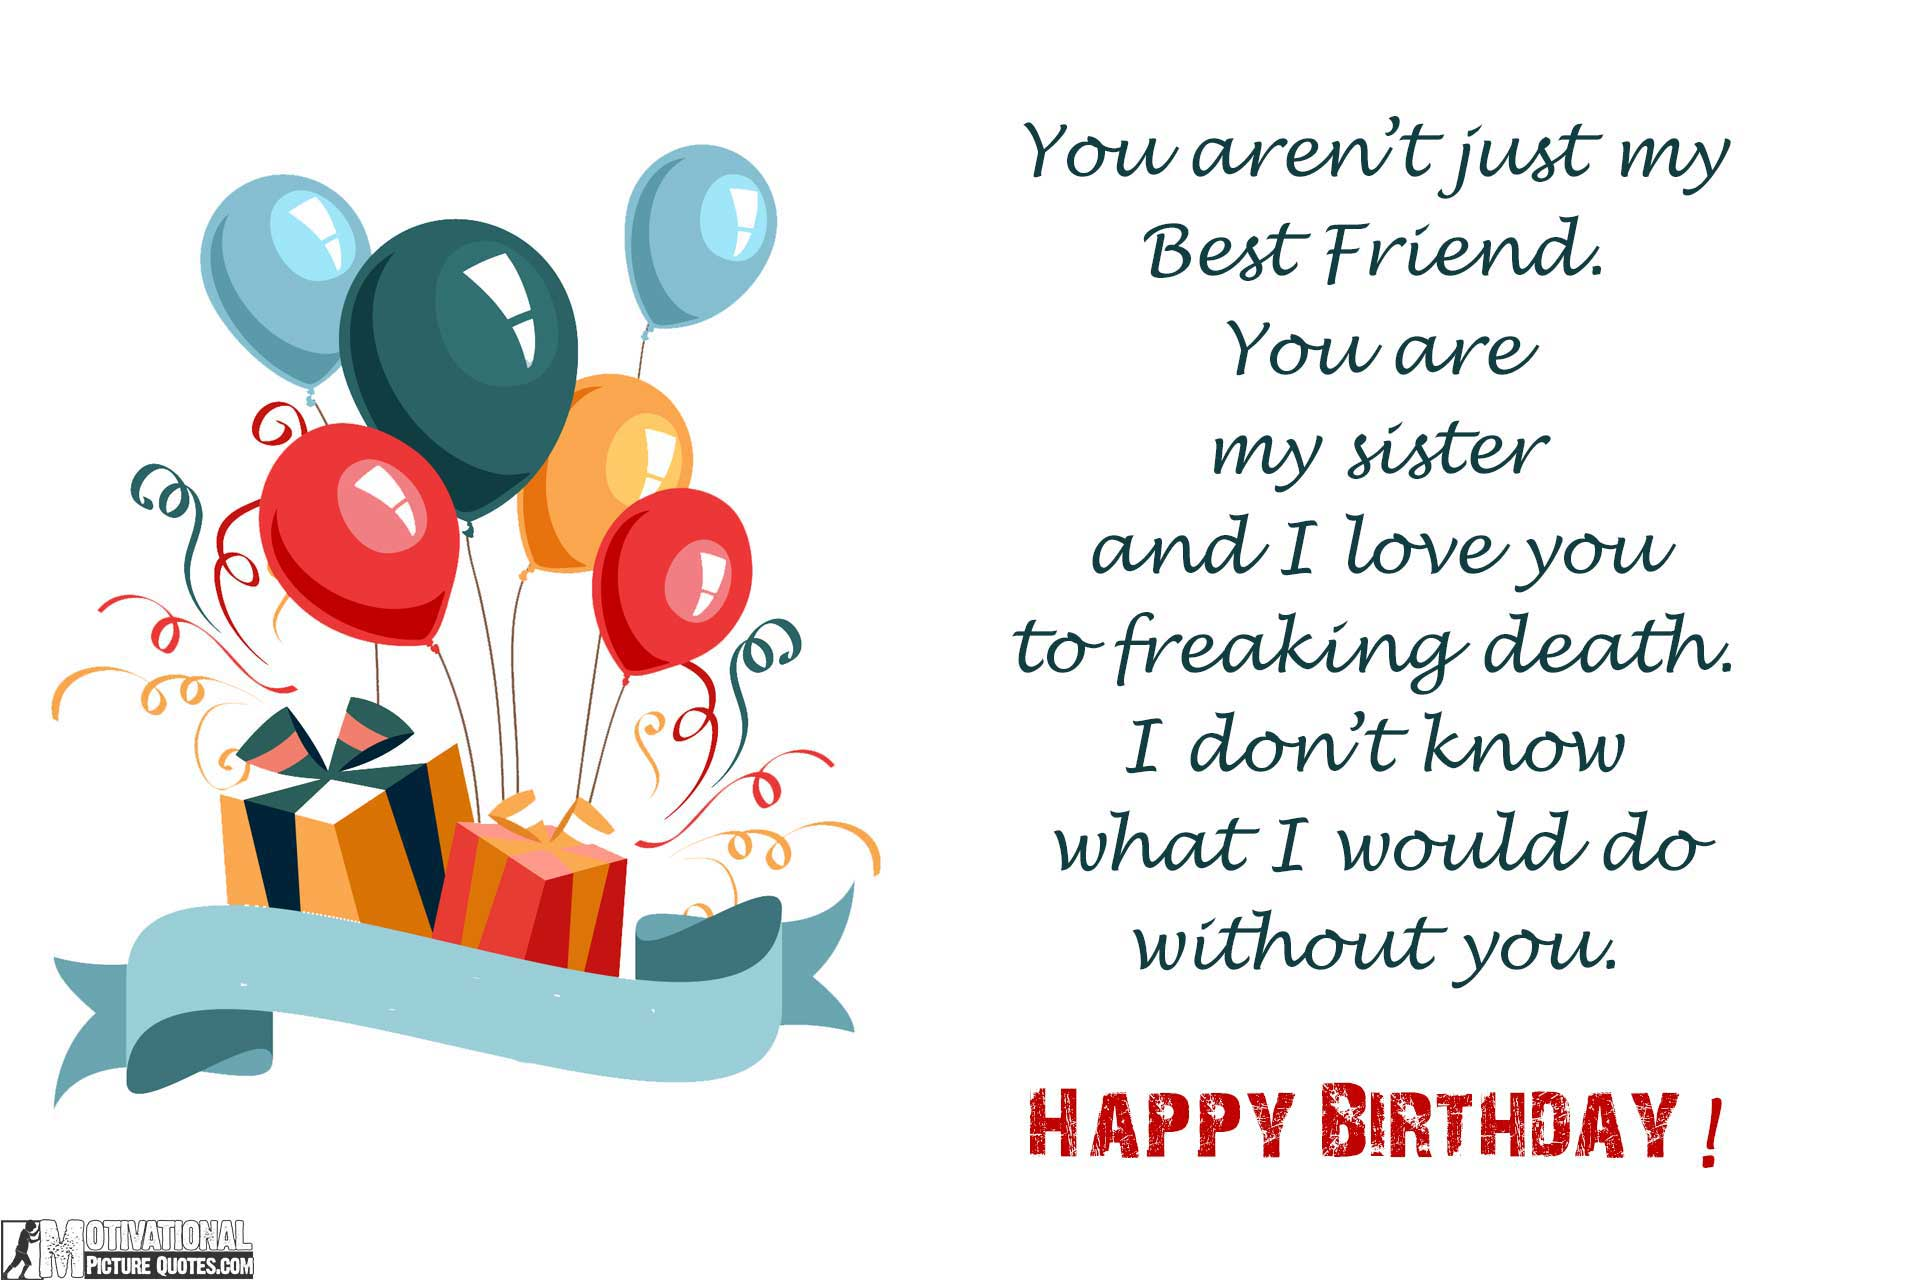 Birthday Inspirational Quotes Inspirational Quotes For Friends Birthday Inspirational Quotes